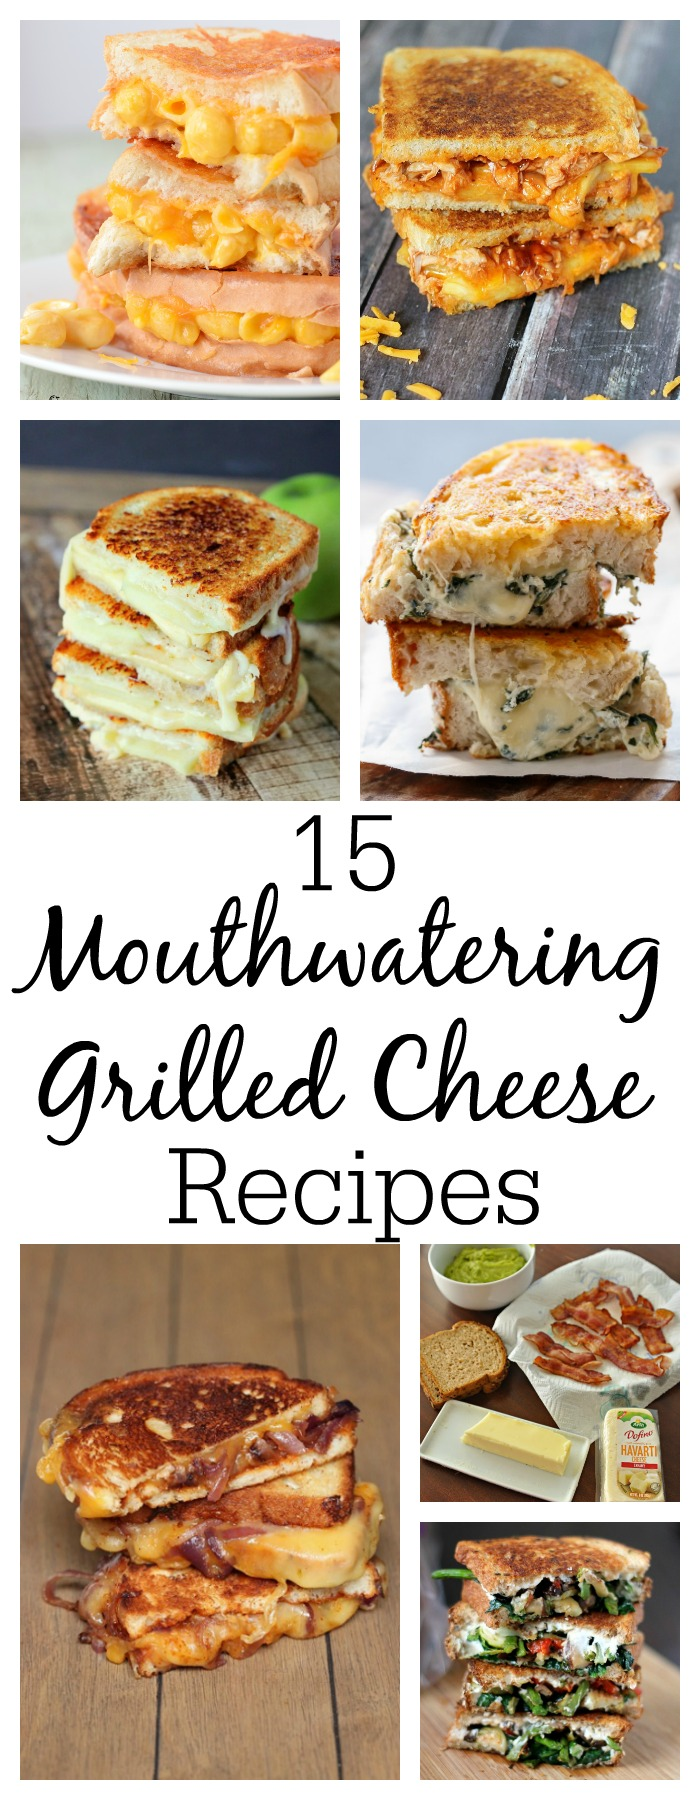 15 Mouthwatering Grilled Cheese Recipes